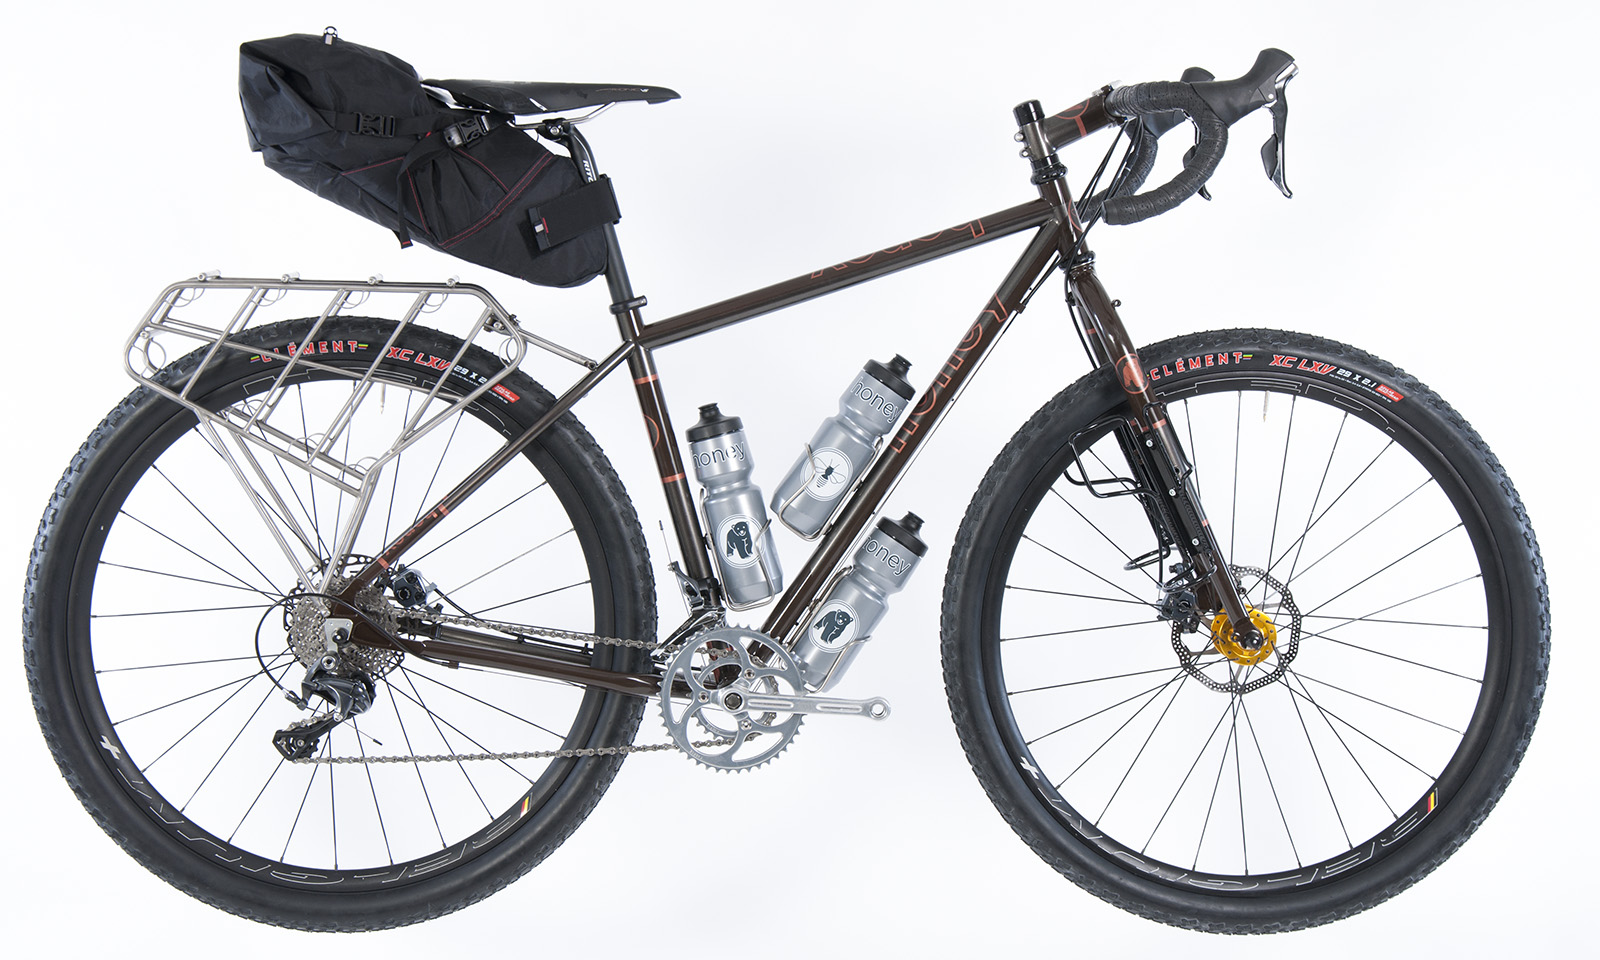 Packmule side seat bag